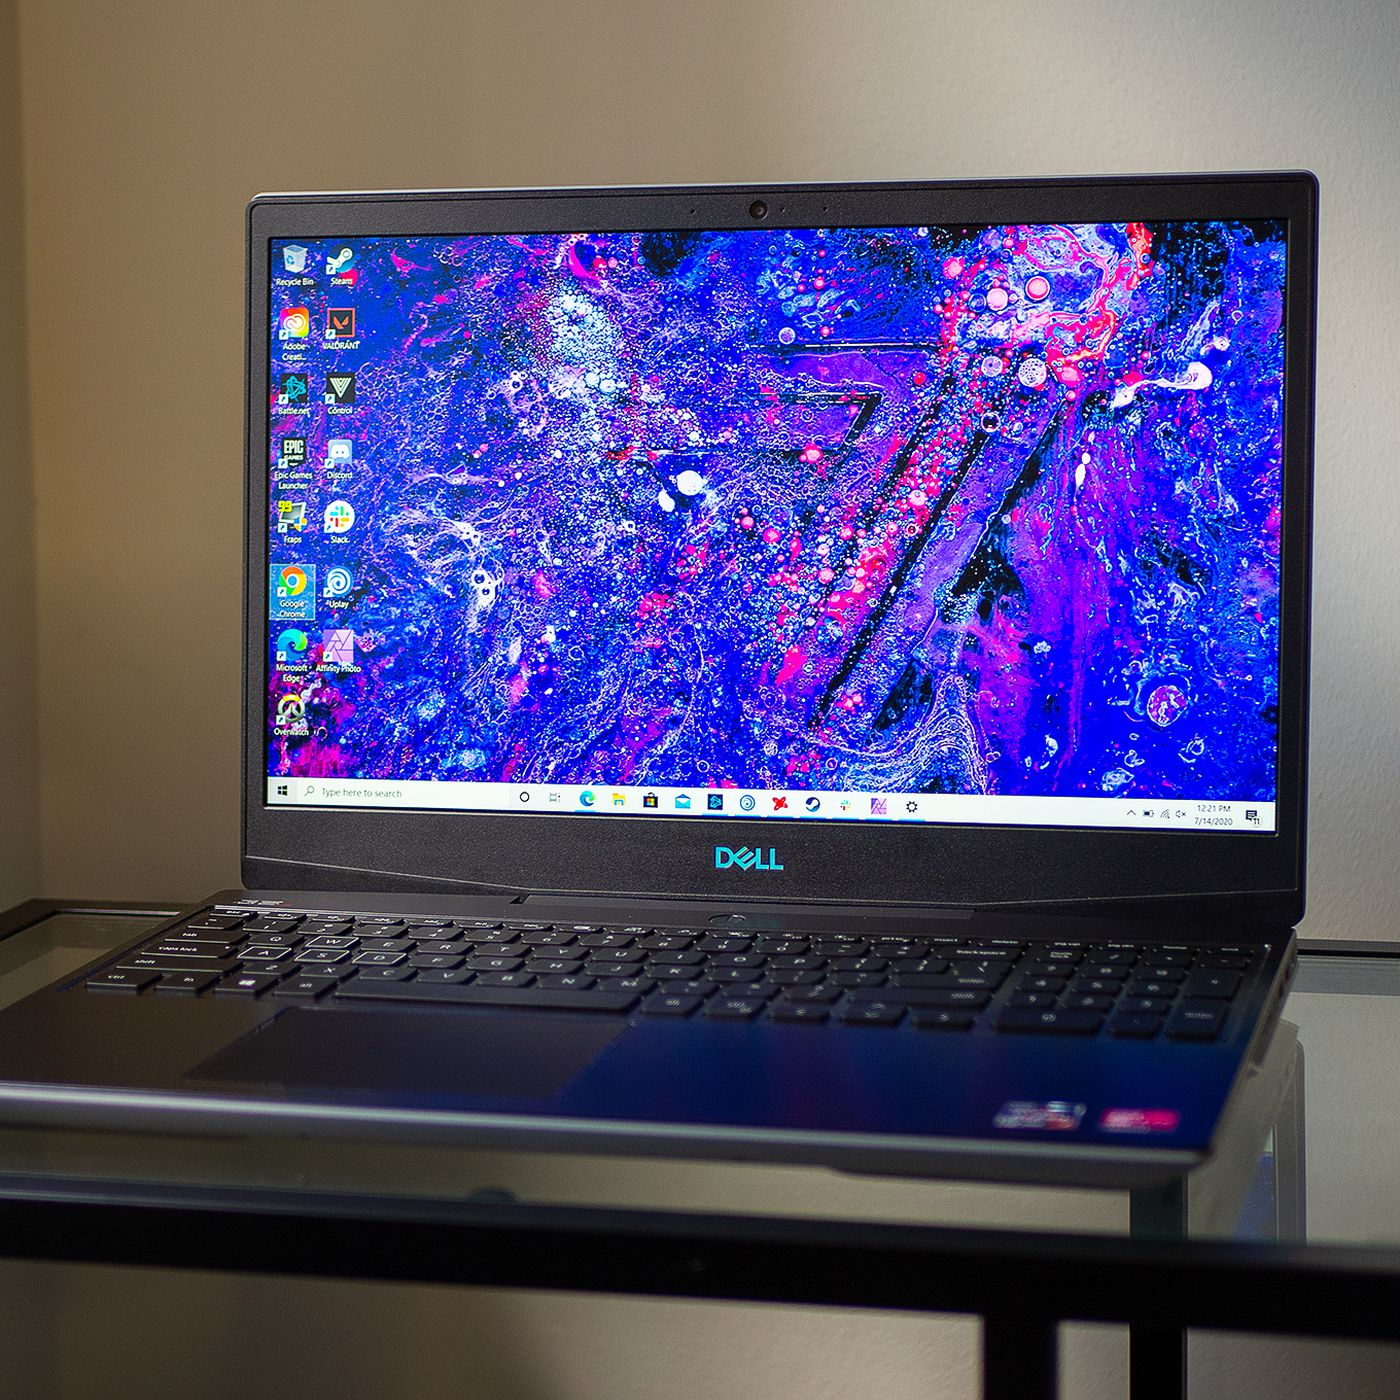 Dell G5 15 Se 2020 Review The Best Gaming Laptop Under 1 000 The Verge